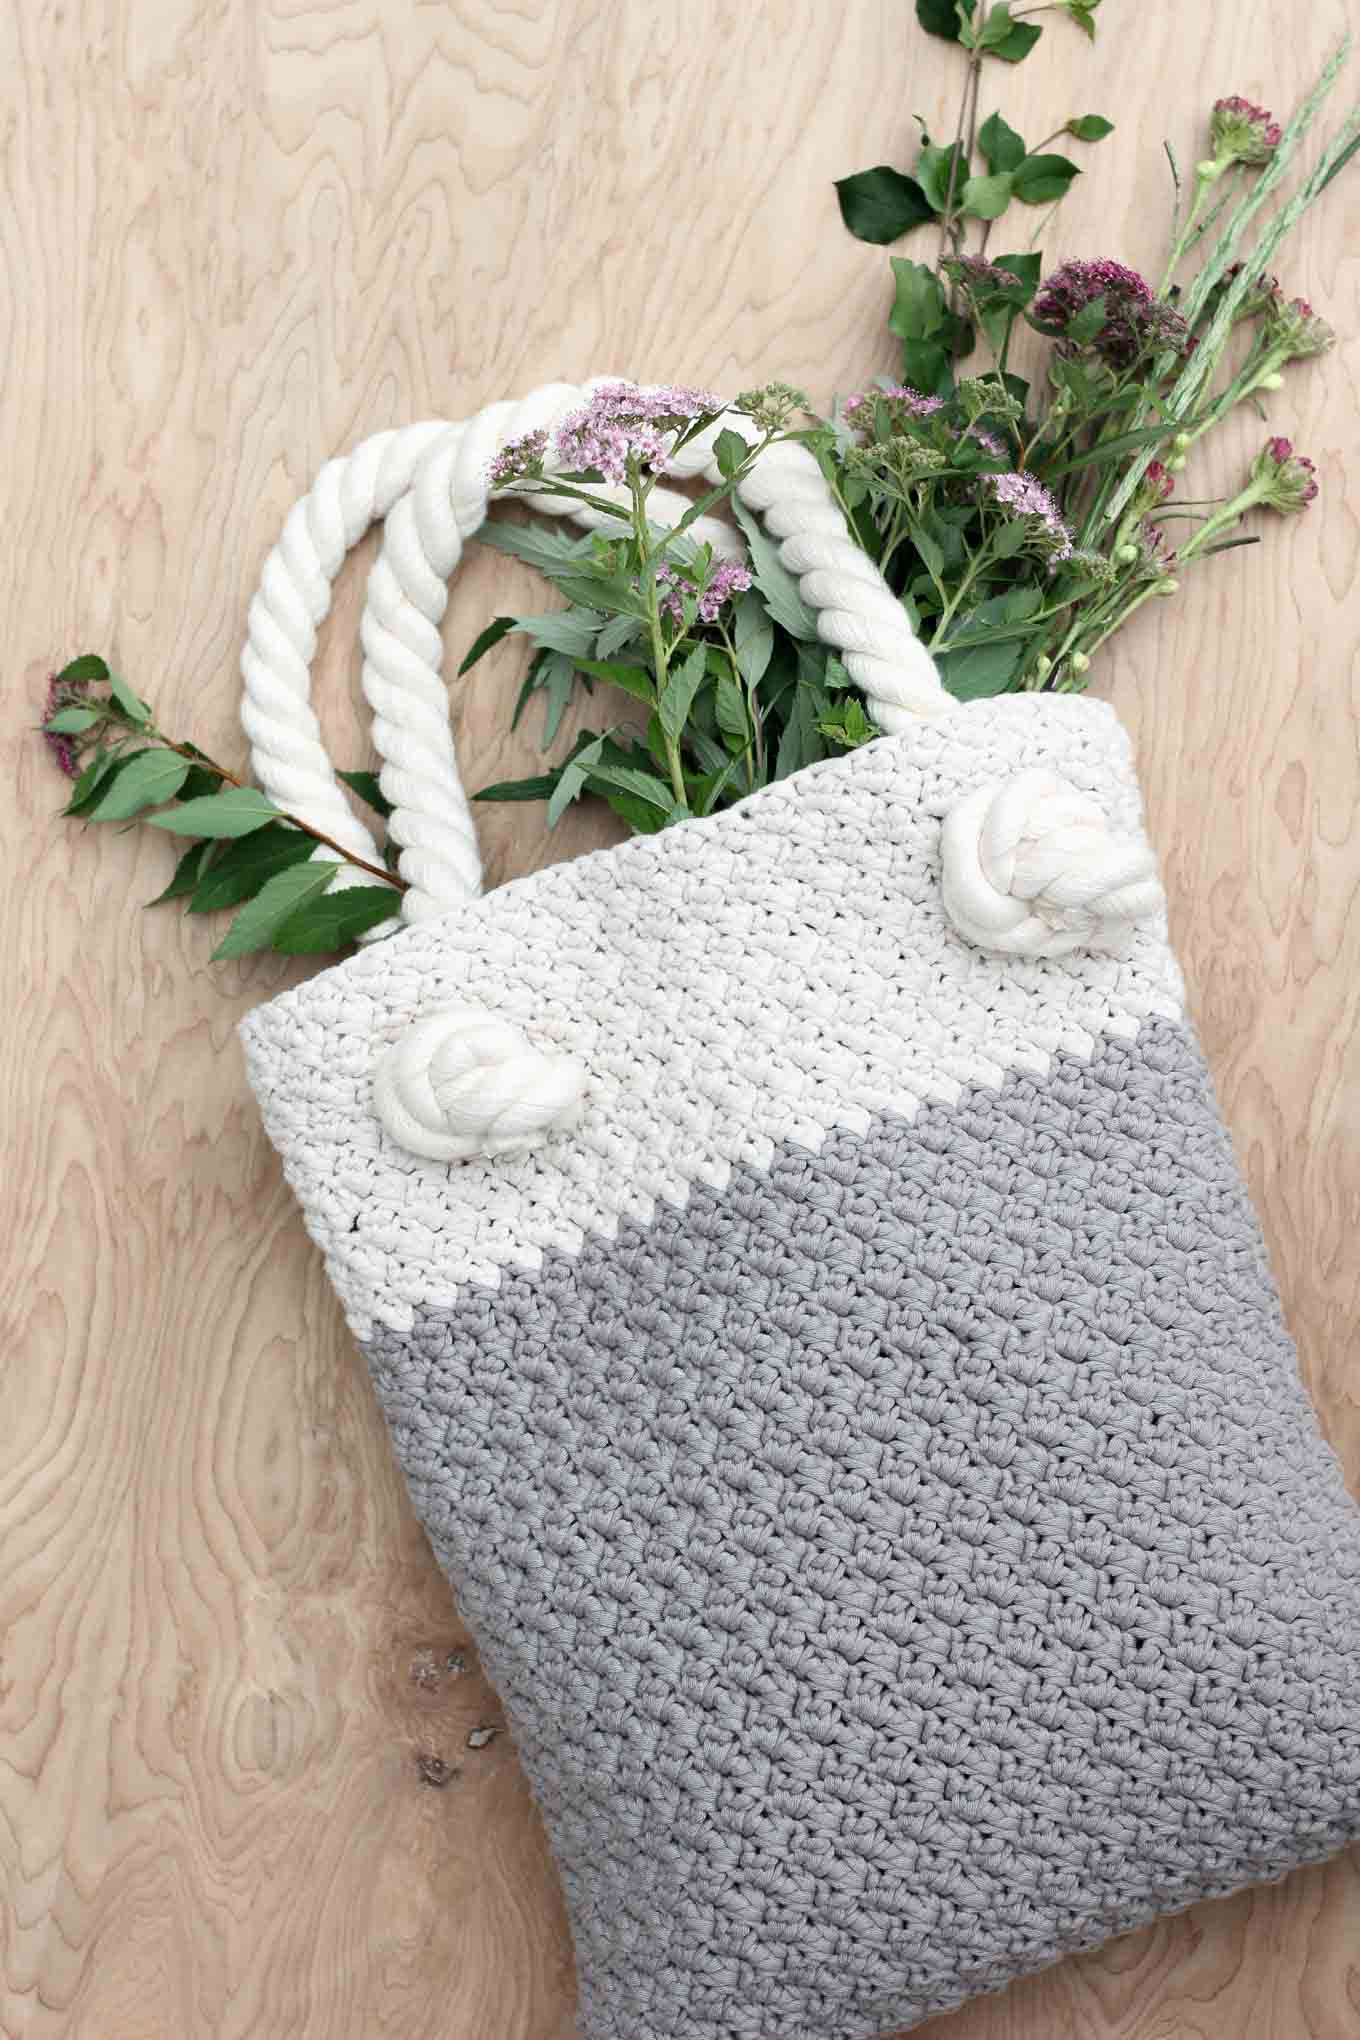 Elegant Easy Crochet Bag Pattern Unique Fall Accessories Easy Crochet for Beginners Of Brilliant 49 Pics Easy Crochet for Beginners